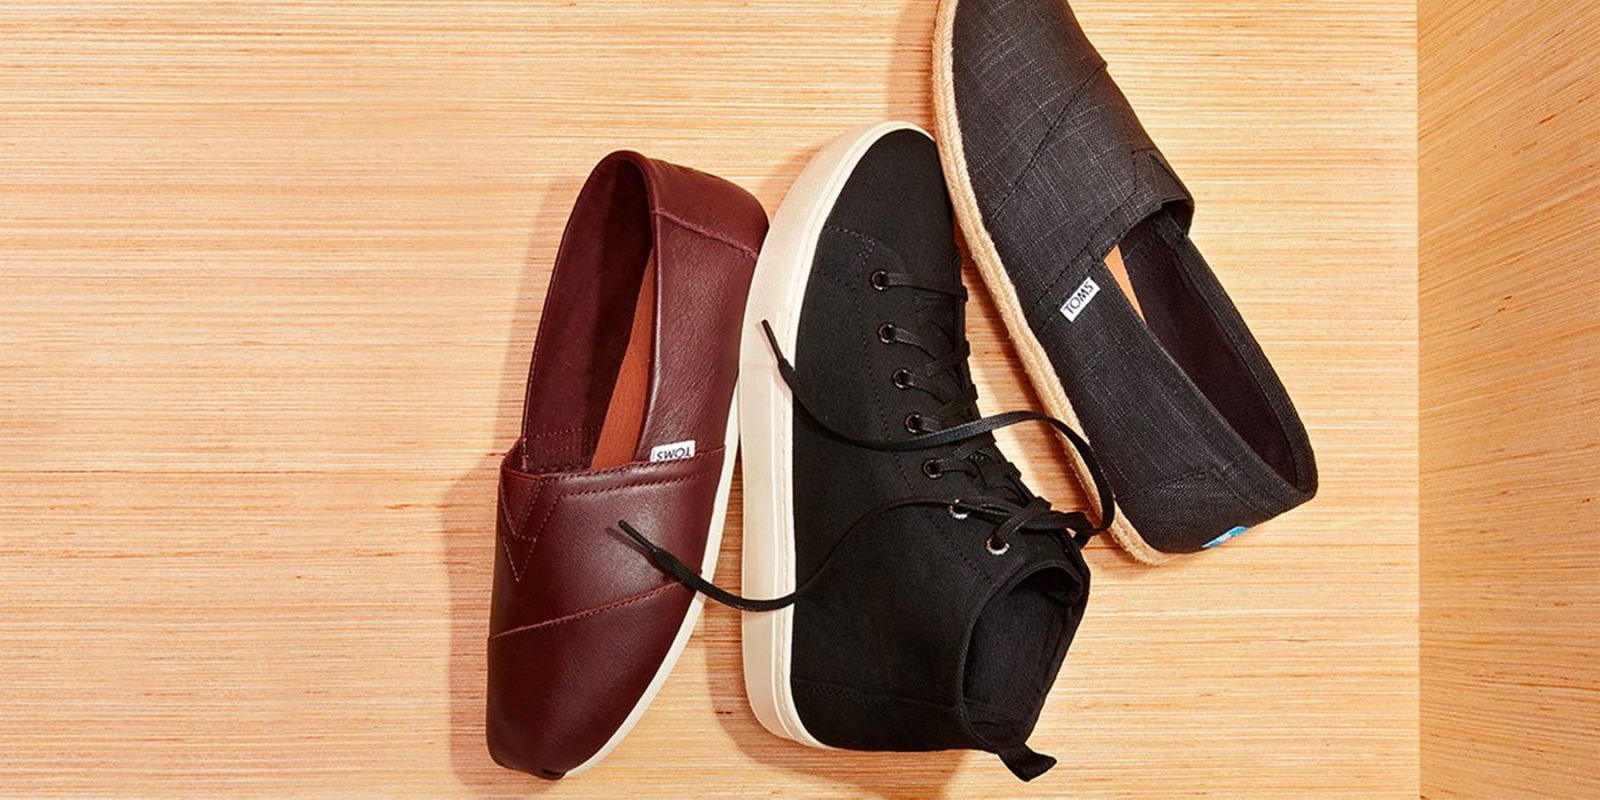 TOMS shoes & accessories from just $30 during Nordstrom Rack's Flash Sale